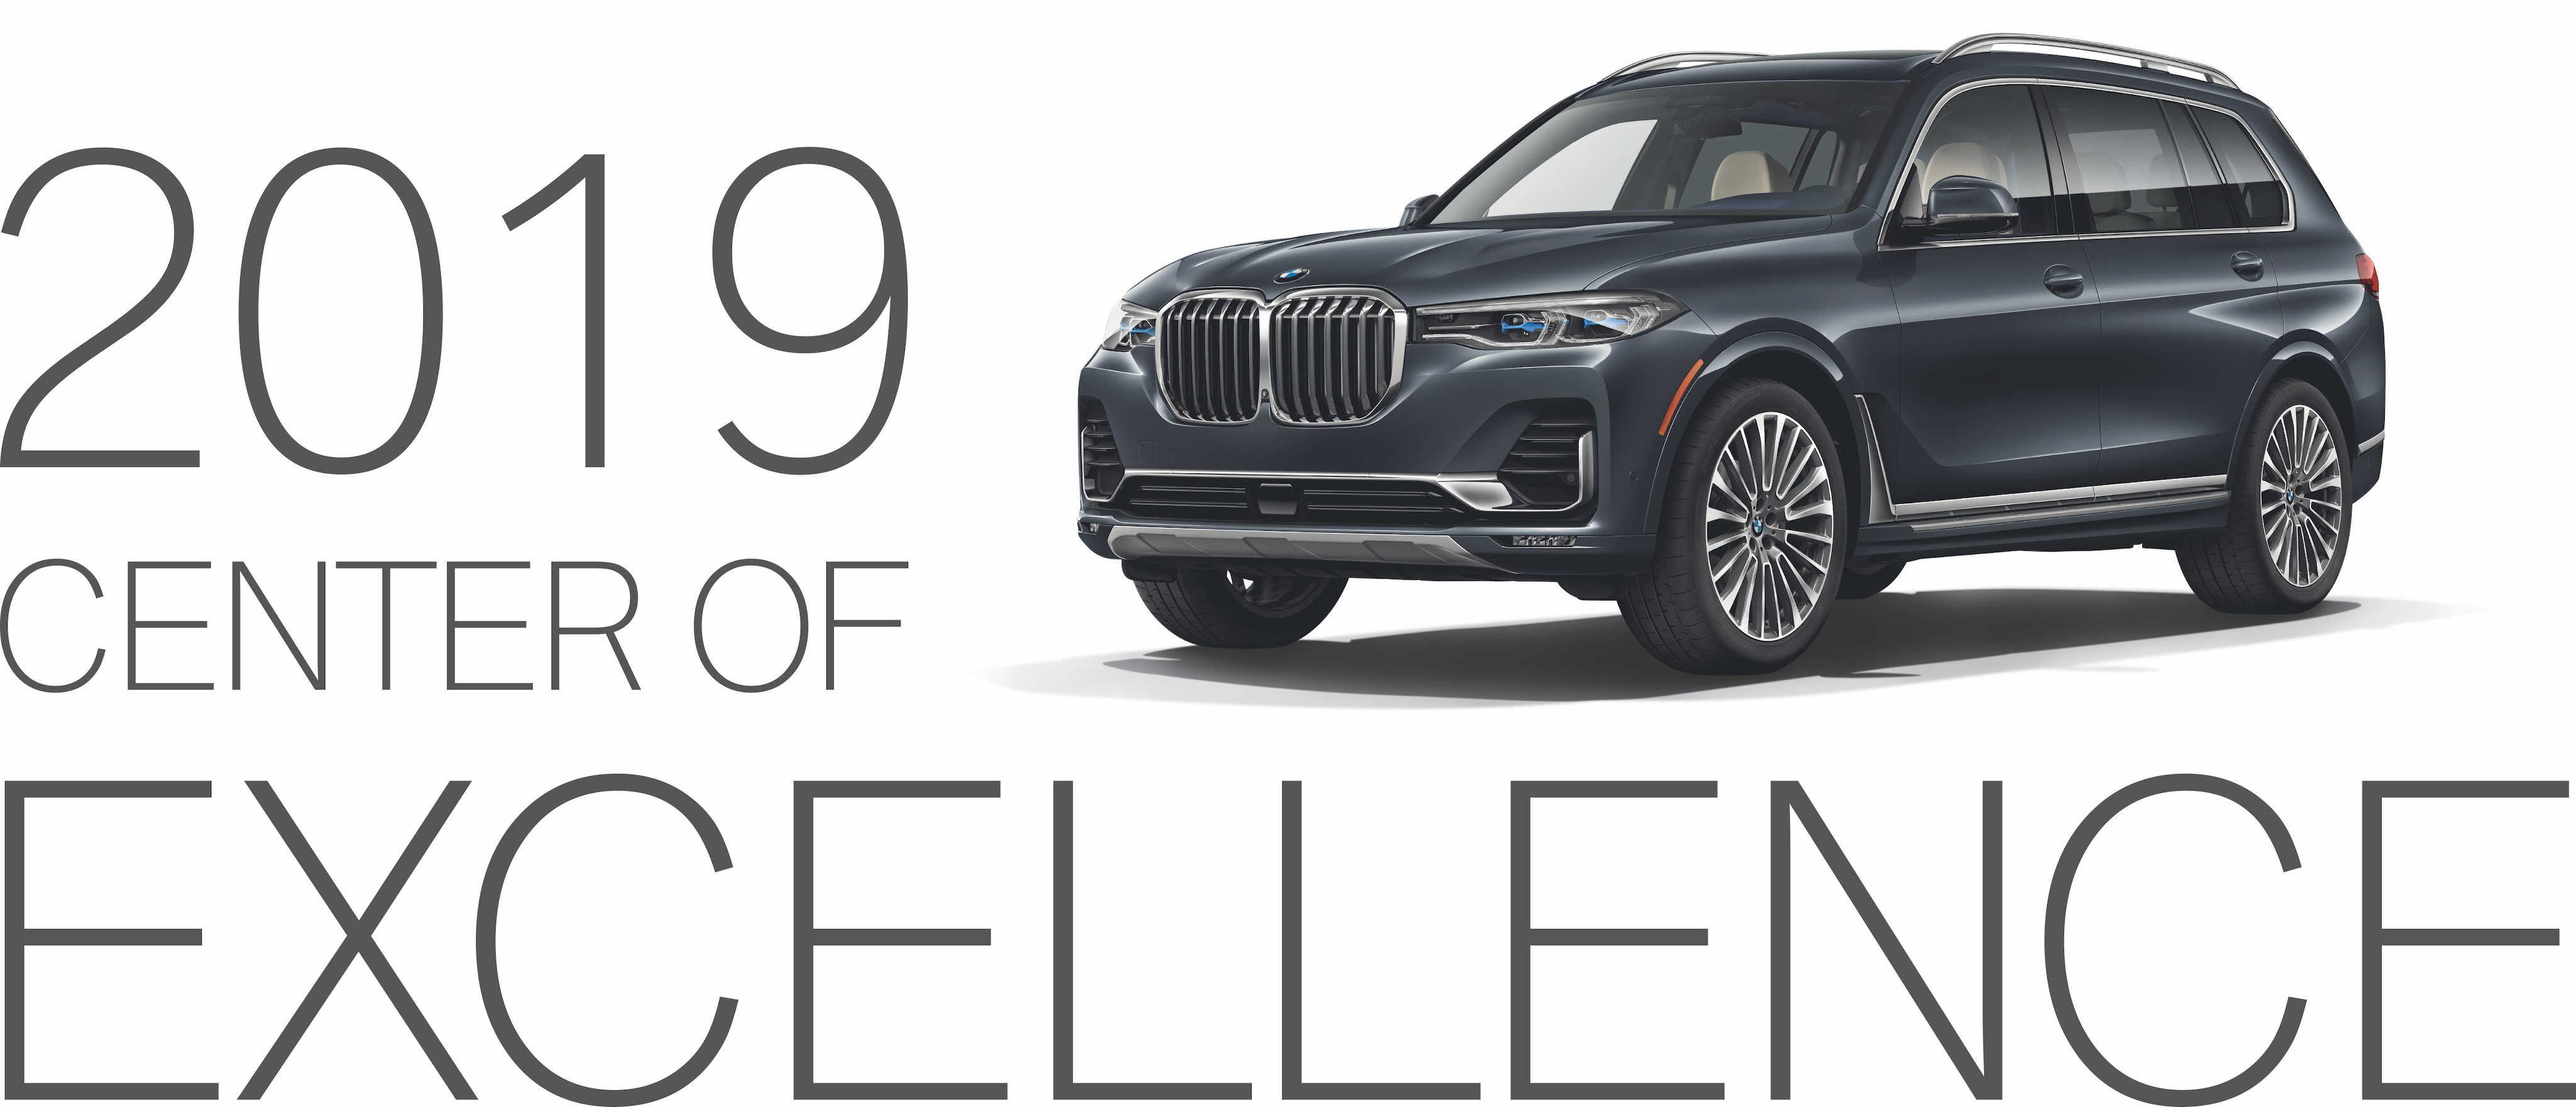 Sudbury Car Dealerships >> Center of Excellence | Herb Chambers BMW of Sudbury